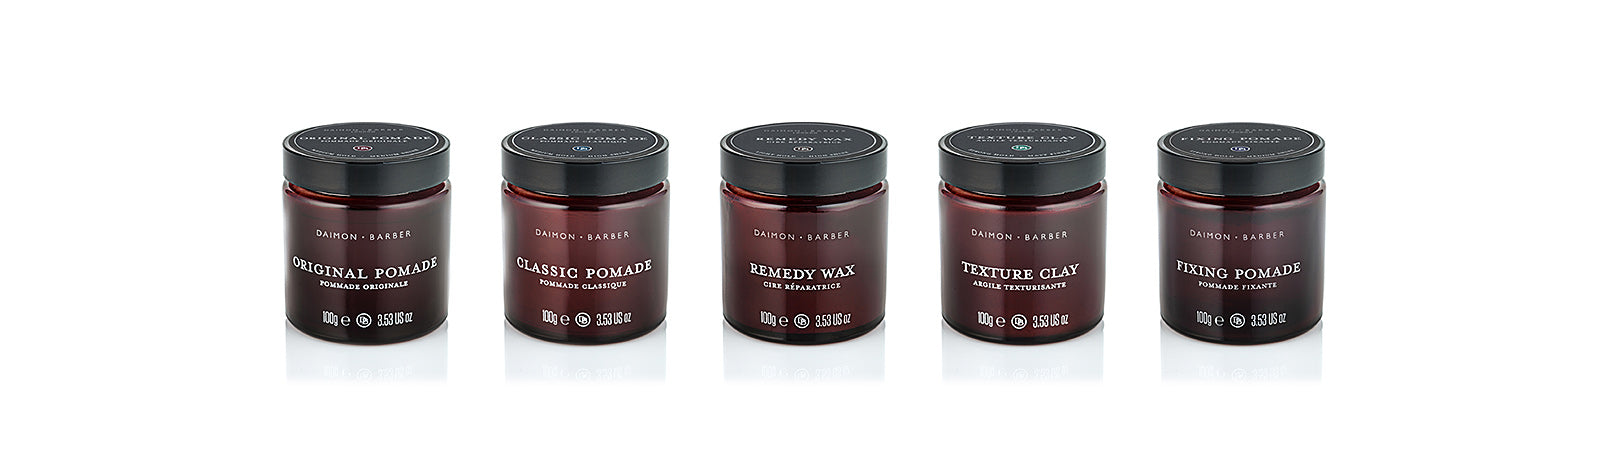 Daimon Barber Hair Pomades